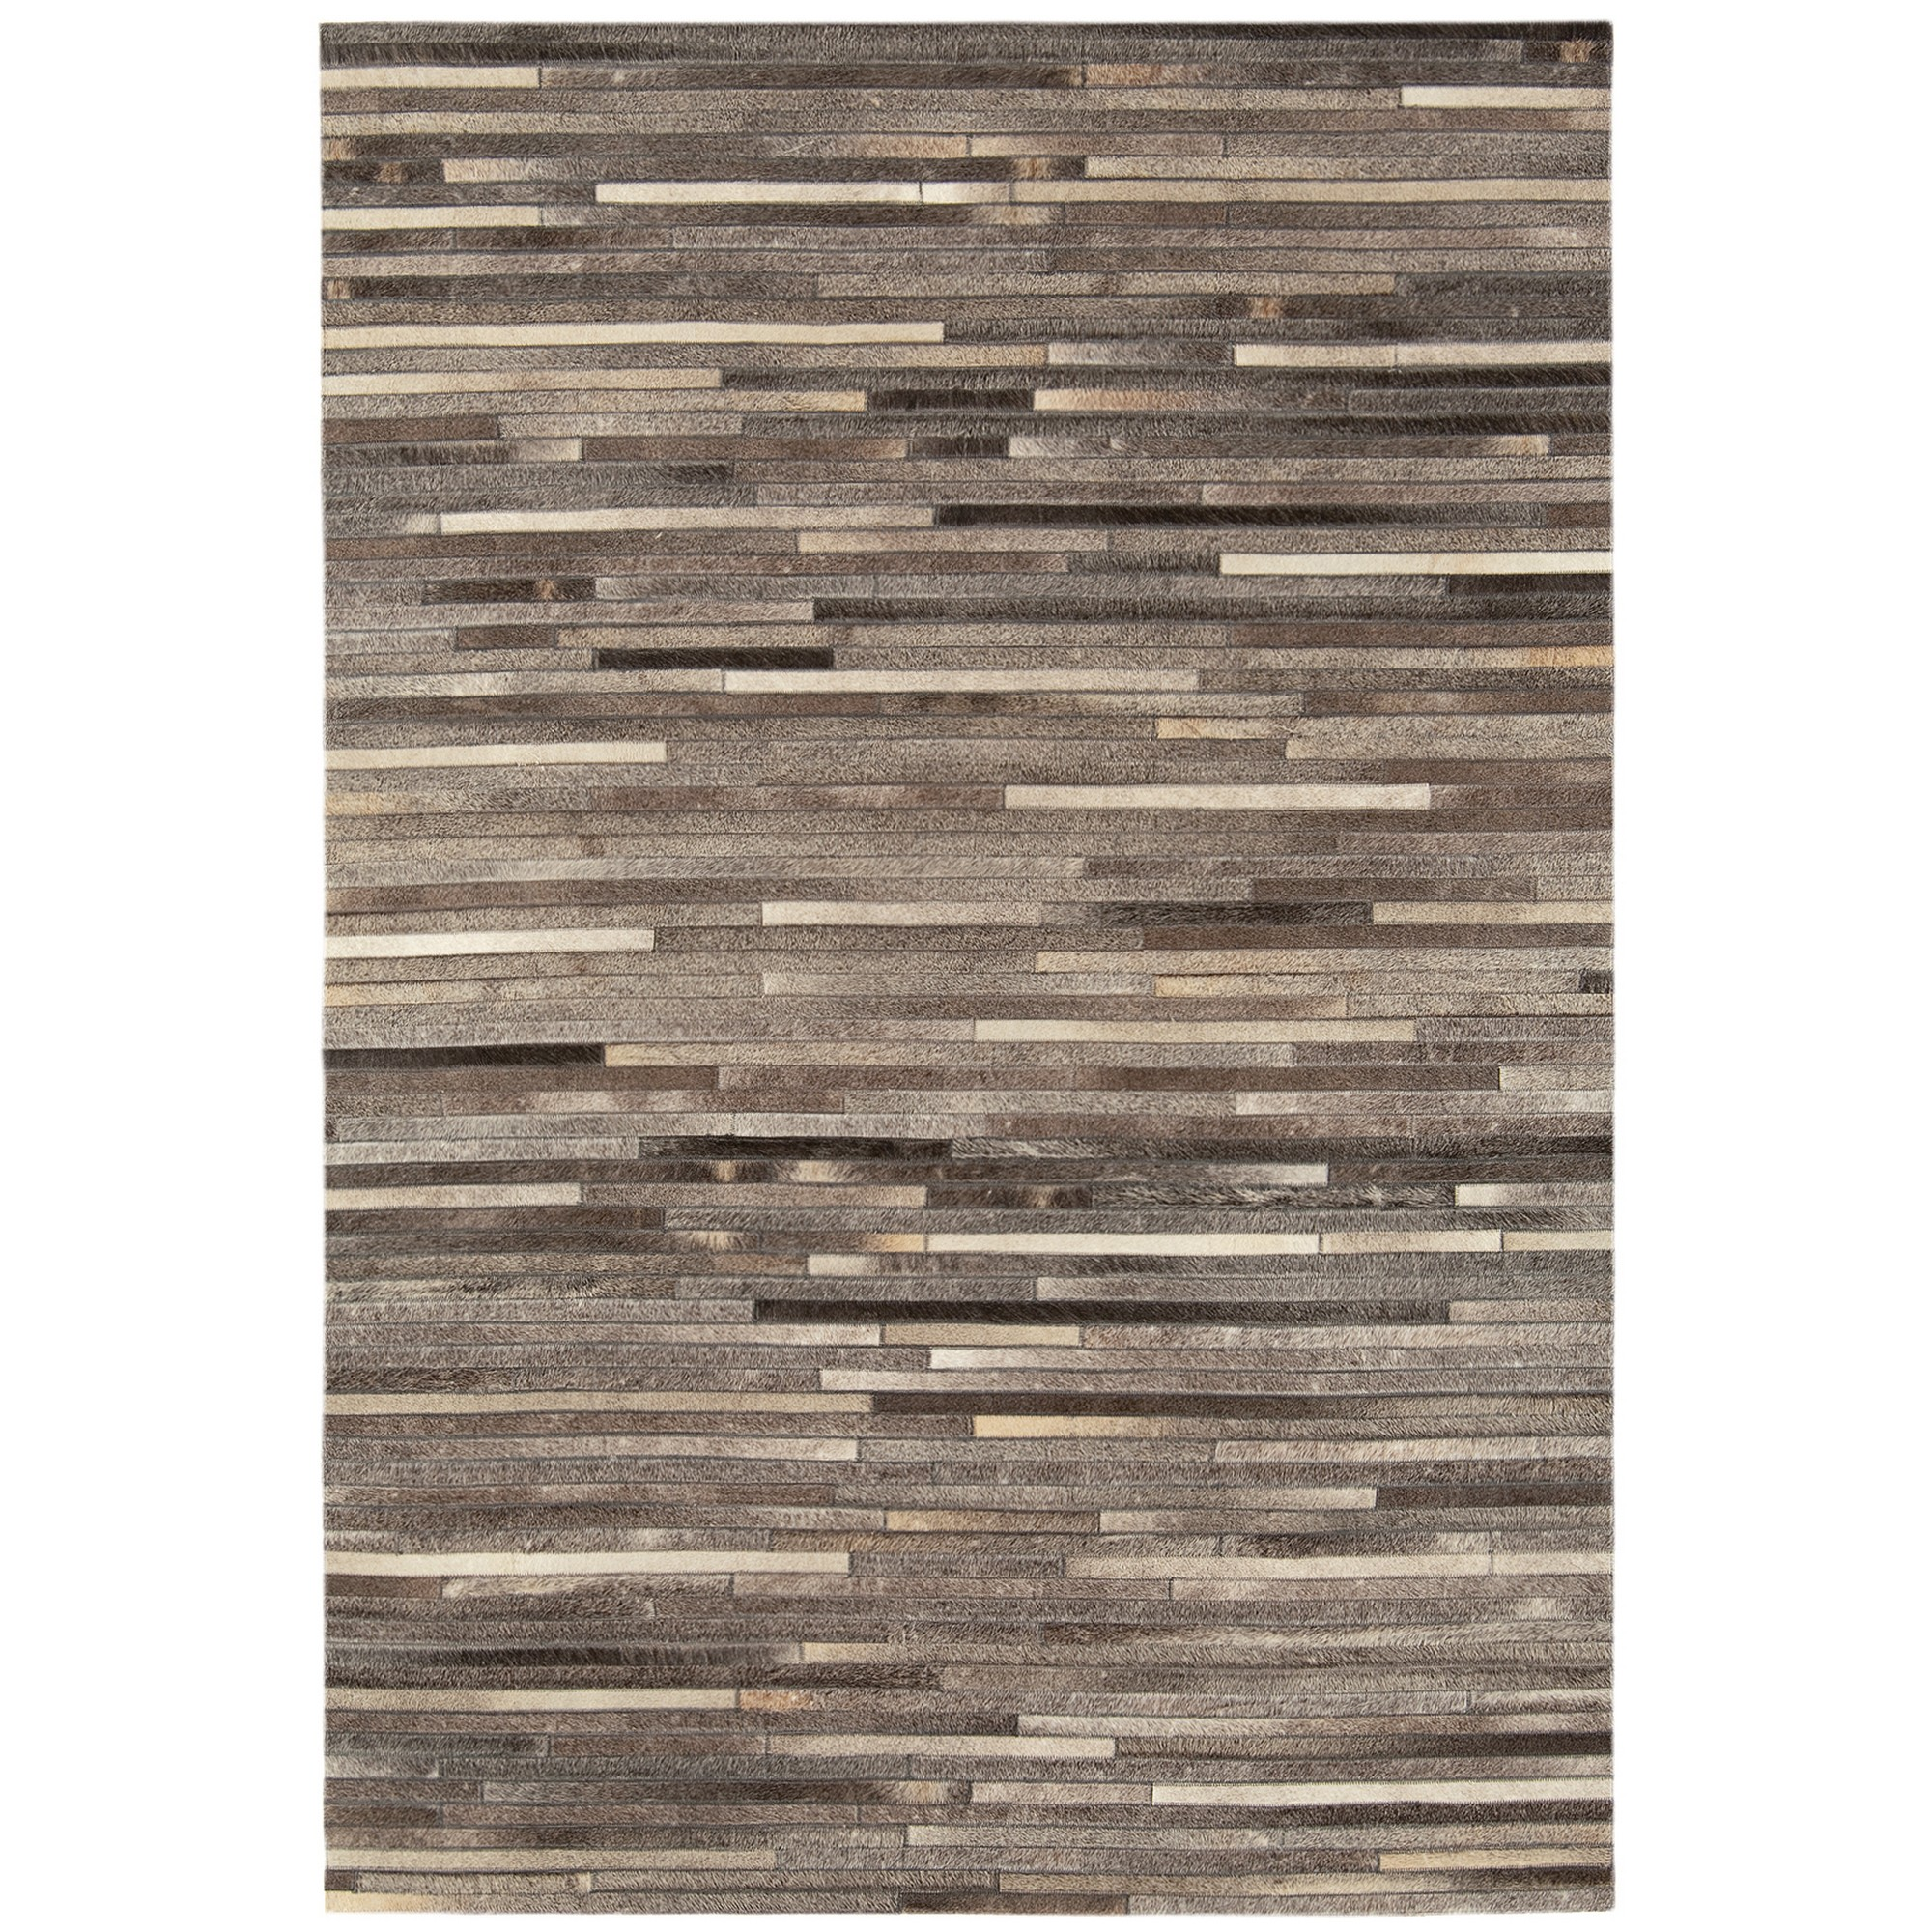 Gaucho Stripe Rugs in Dark Grey